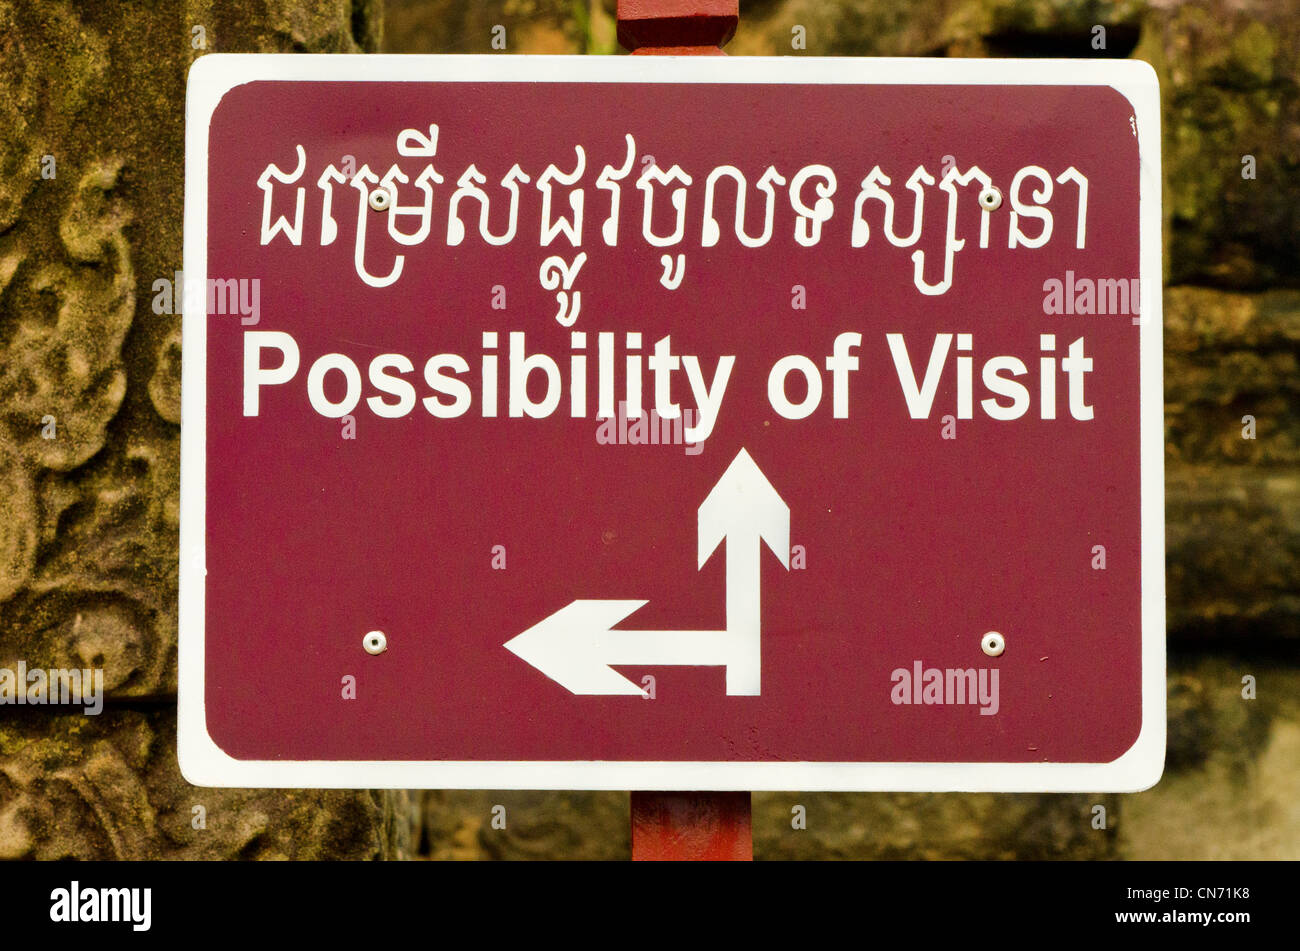 Tourist Sign, Possibility of Visit, Ankor Wat, Cambodia - Stock Image